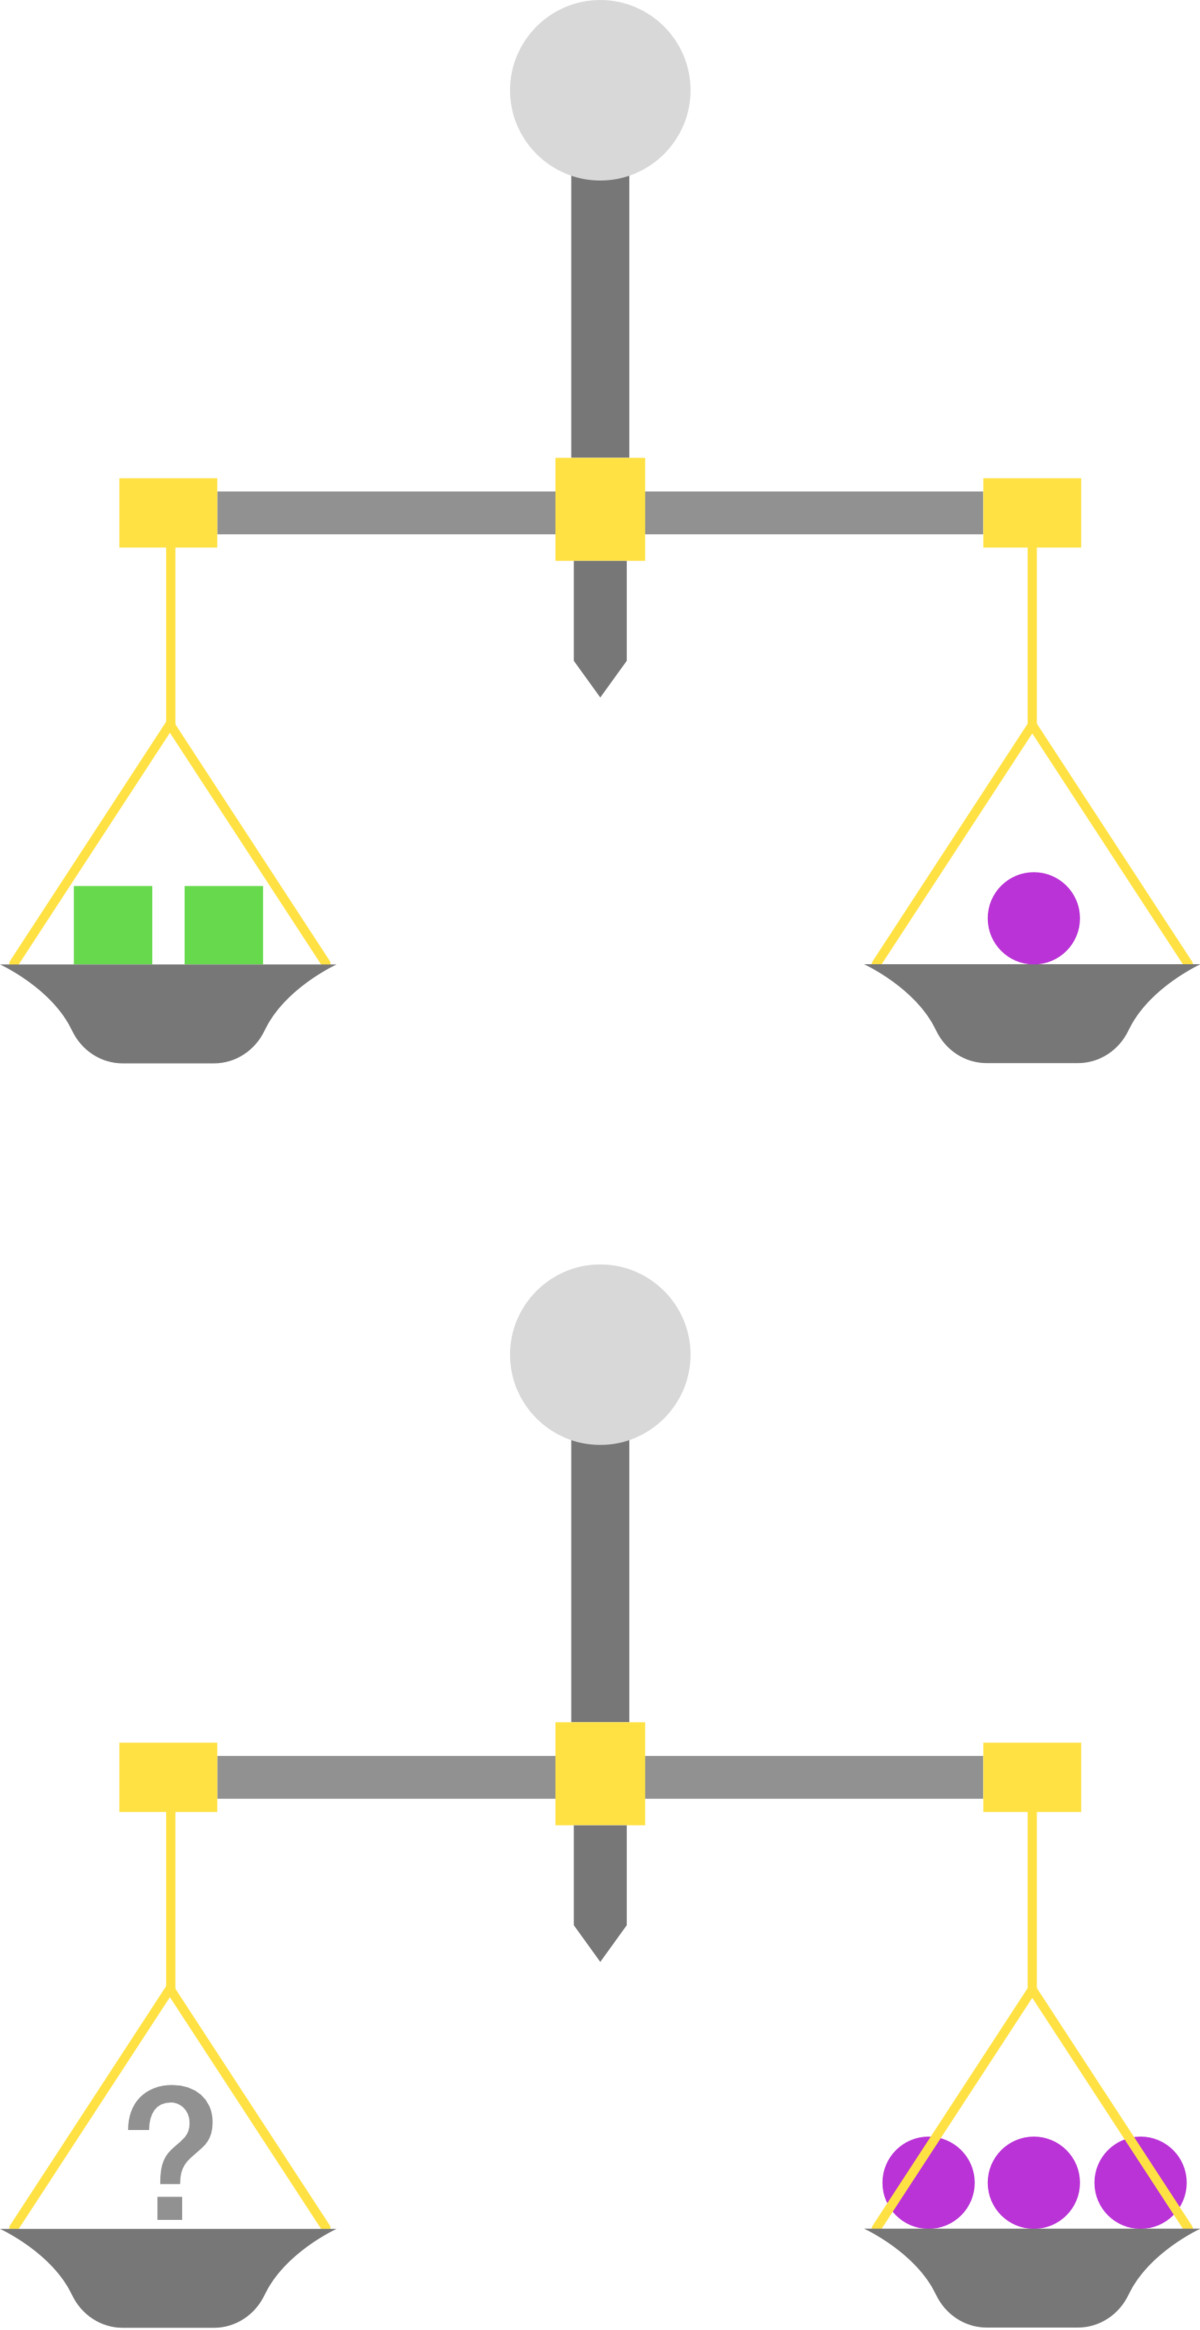 Balance Puzzles Brilliant Math Science Wiki Logic Diagram Shapes In Order To The Scale How Many Green Squares Would Need Be Added One End Of If Other Had 3 Purple Circles On It